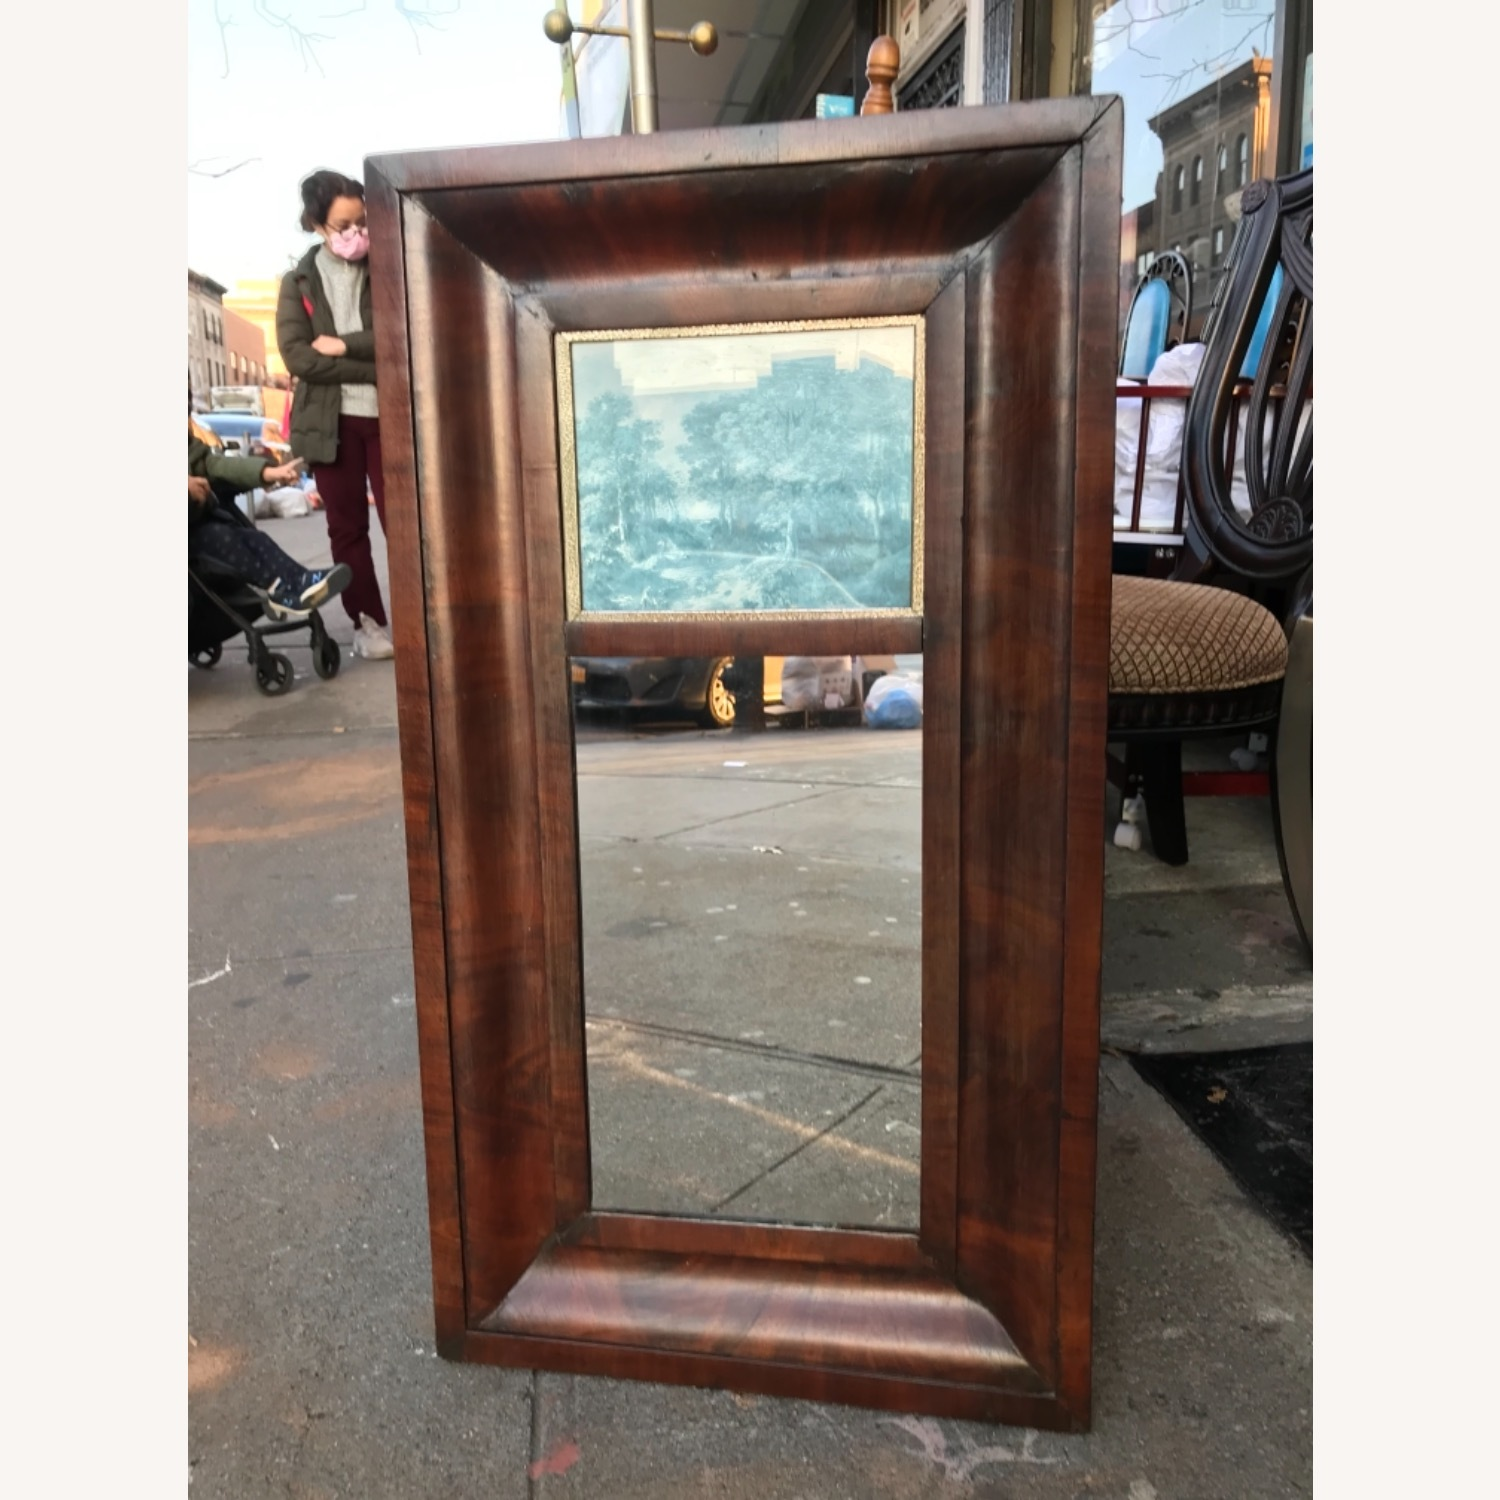 Antique 1900s Mahogany Framed Mirror w/ Picture - image-7